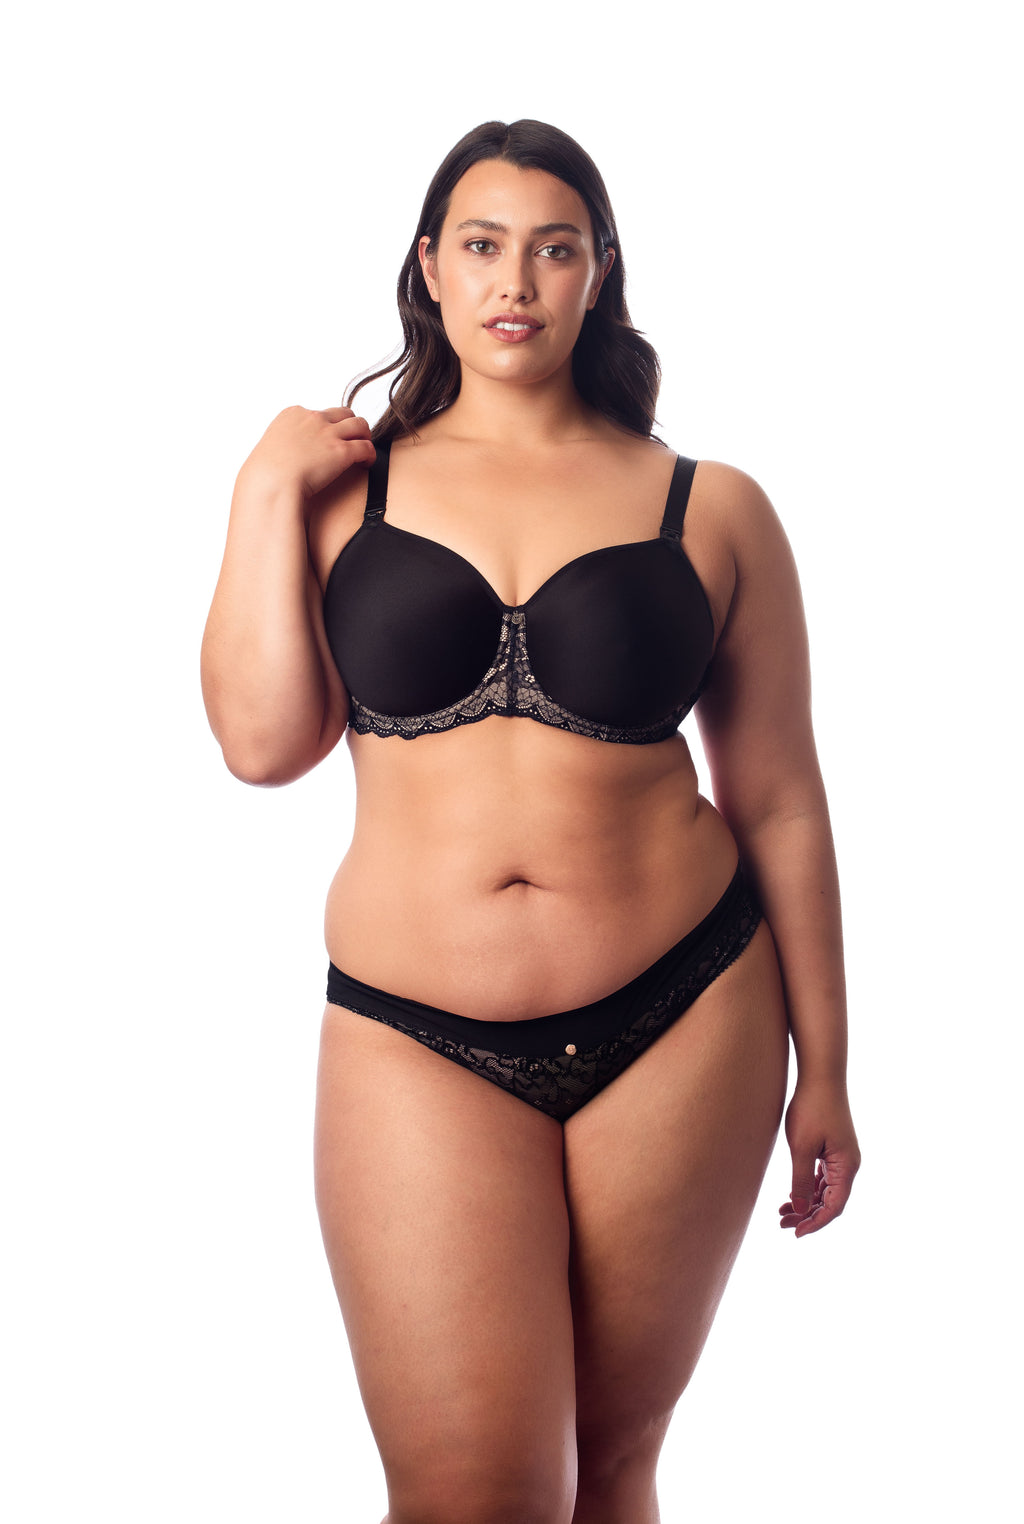 OBSESSION FULLER CUP NURSING BRA HOTMILK black